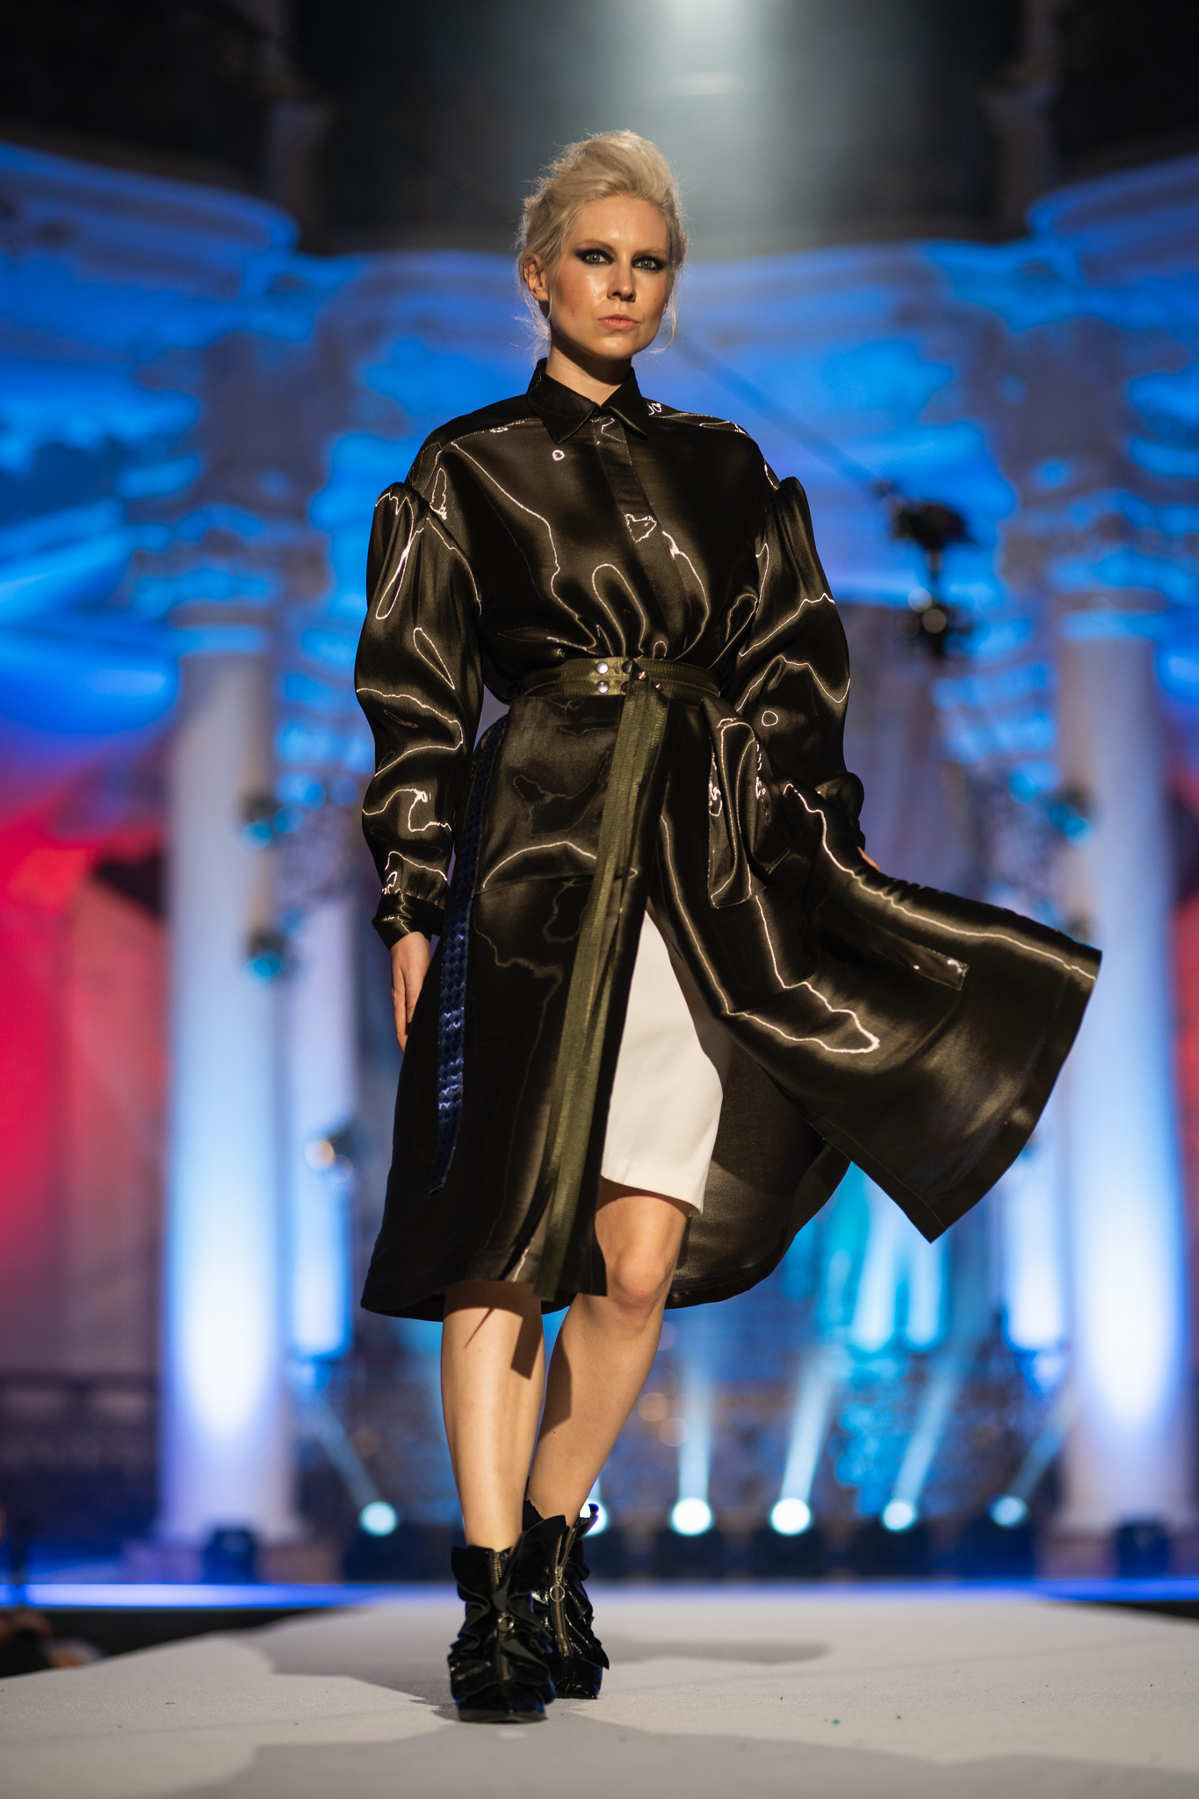 Women's designer clothing in Prague: New collection by Pavel Berky